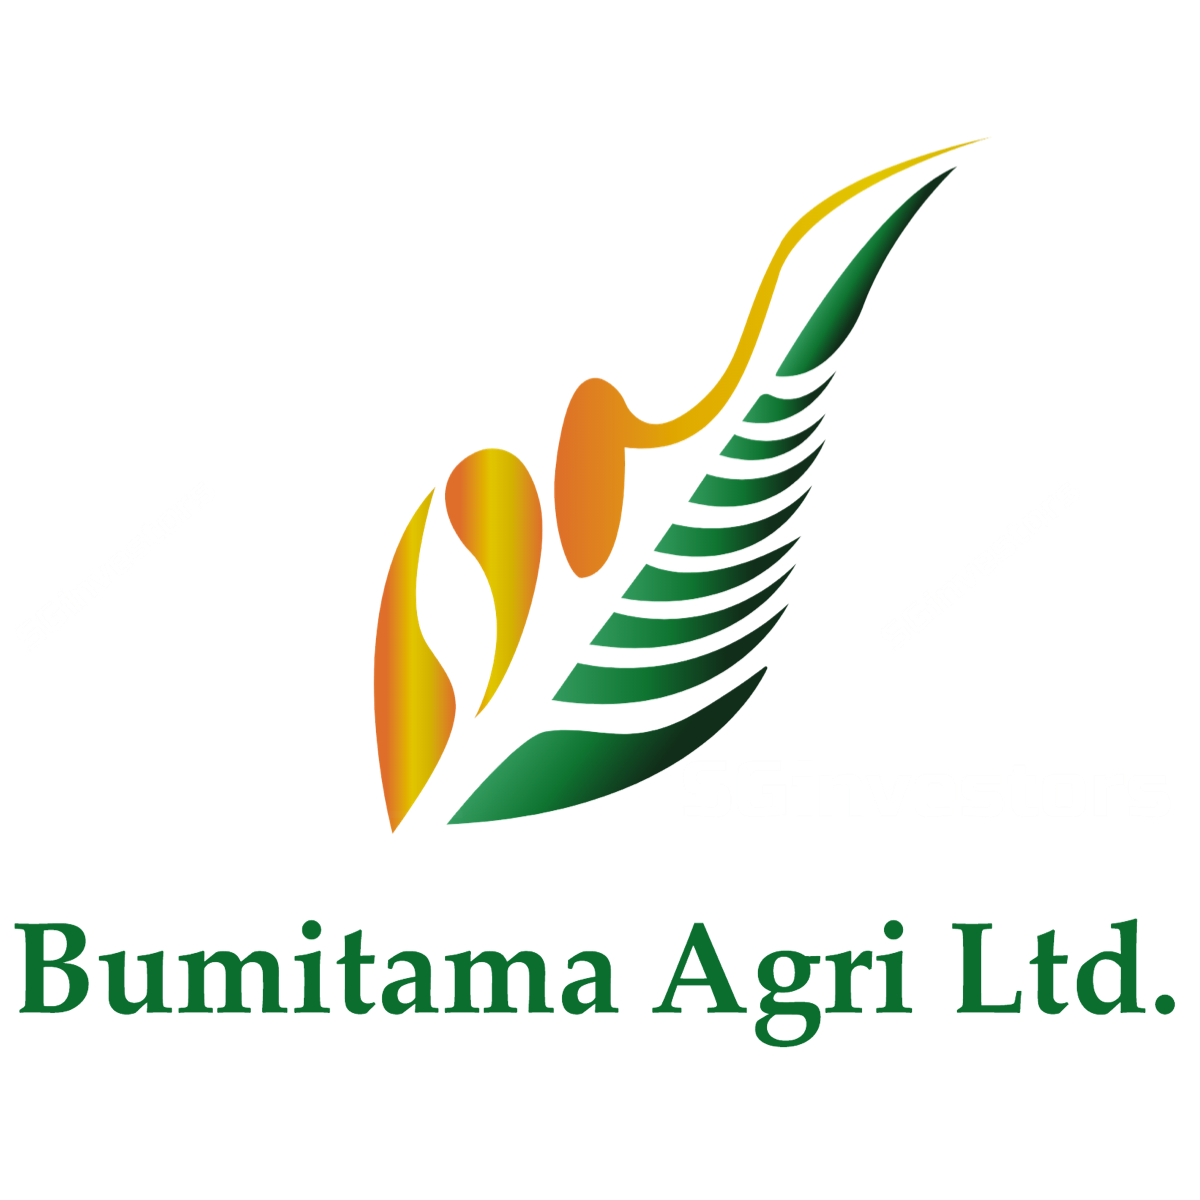 Bumitama Agri (BAL SP) - DBS Vickers 2017-08-15: In House Fruit Output Supported Profitability In 2Q17